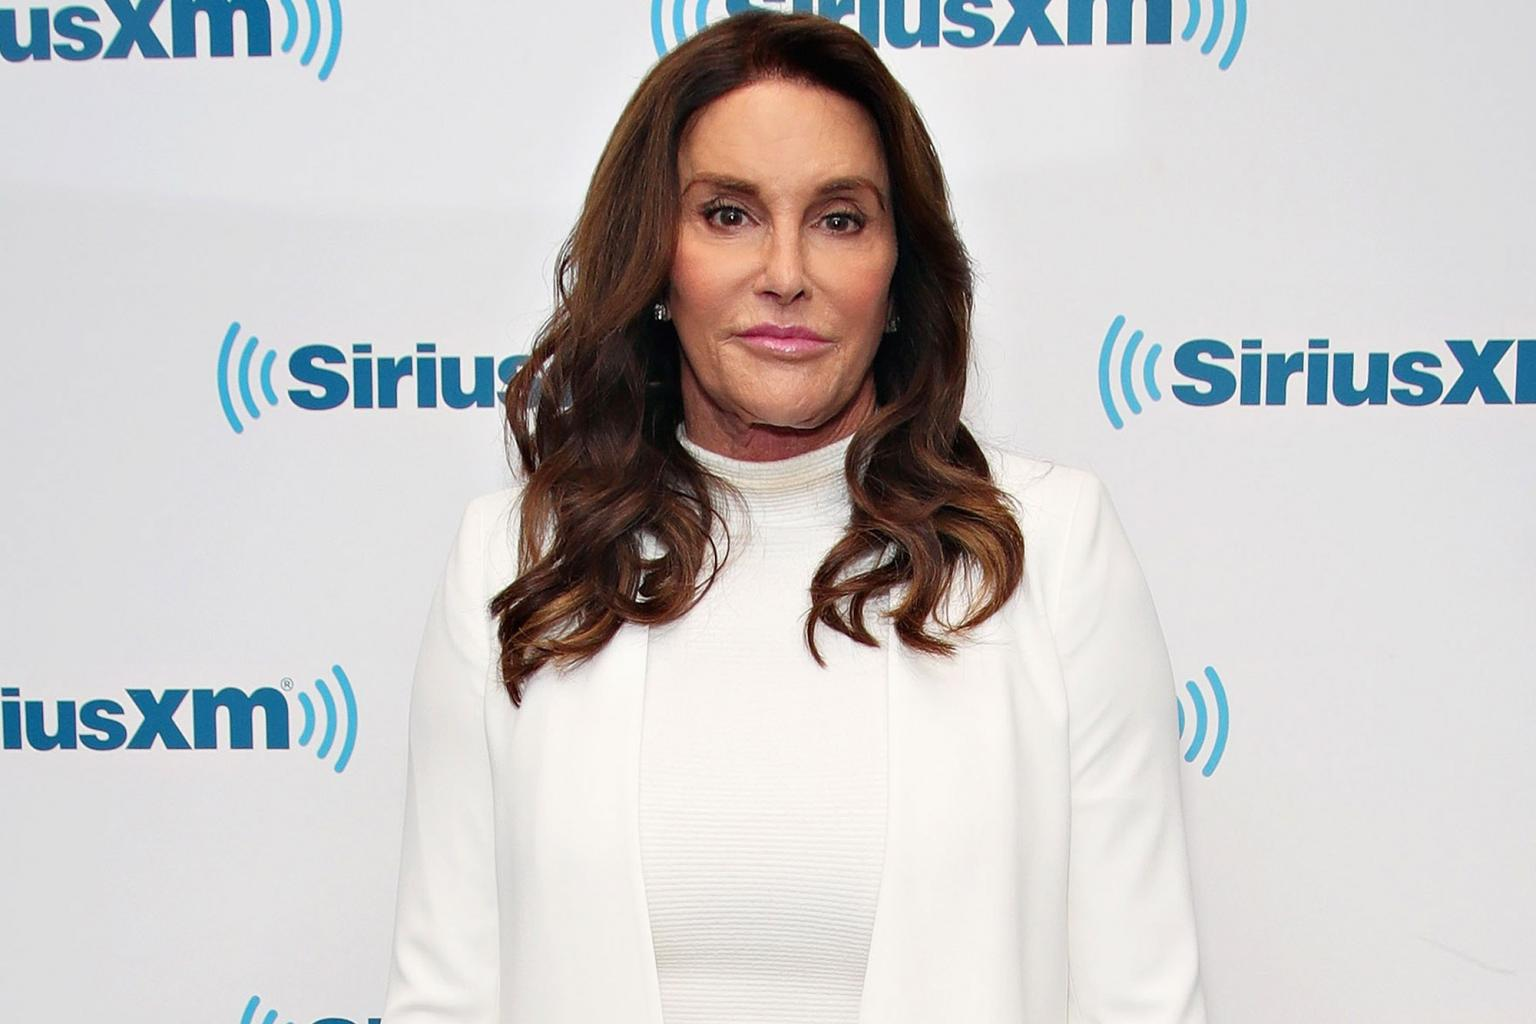 Caitlyn Jenner Jokes That    Liberals Can  't Even Shoot Straight '  While Addressing Gop Baseball  Attack